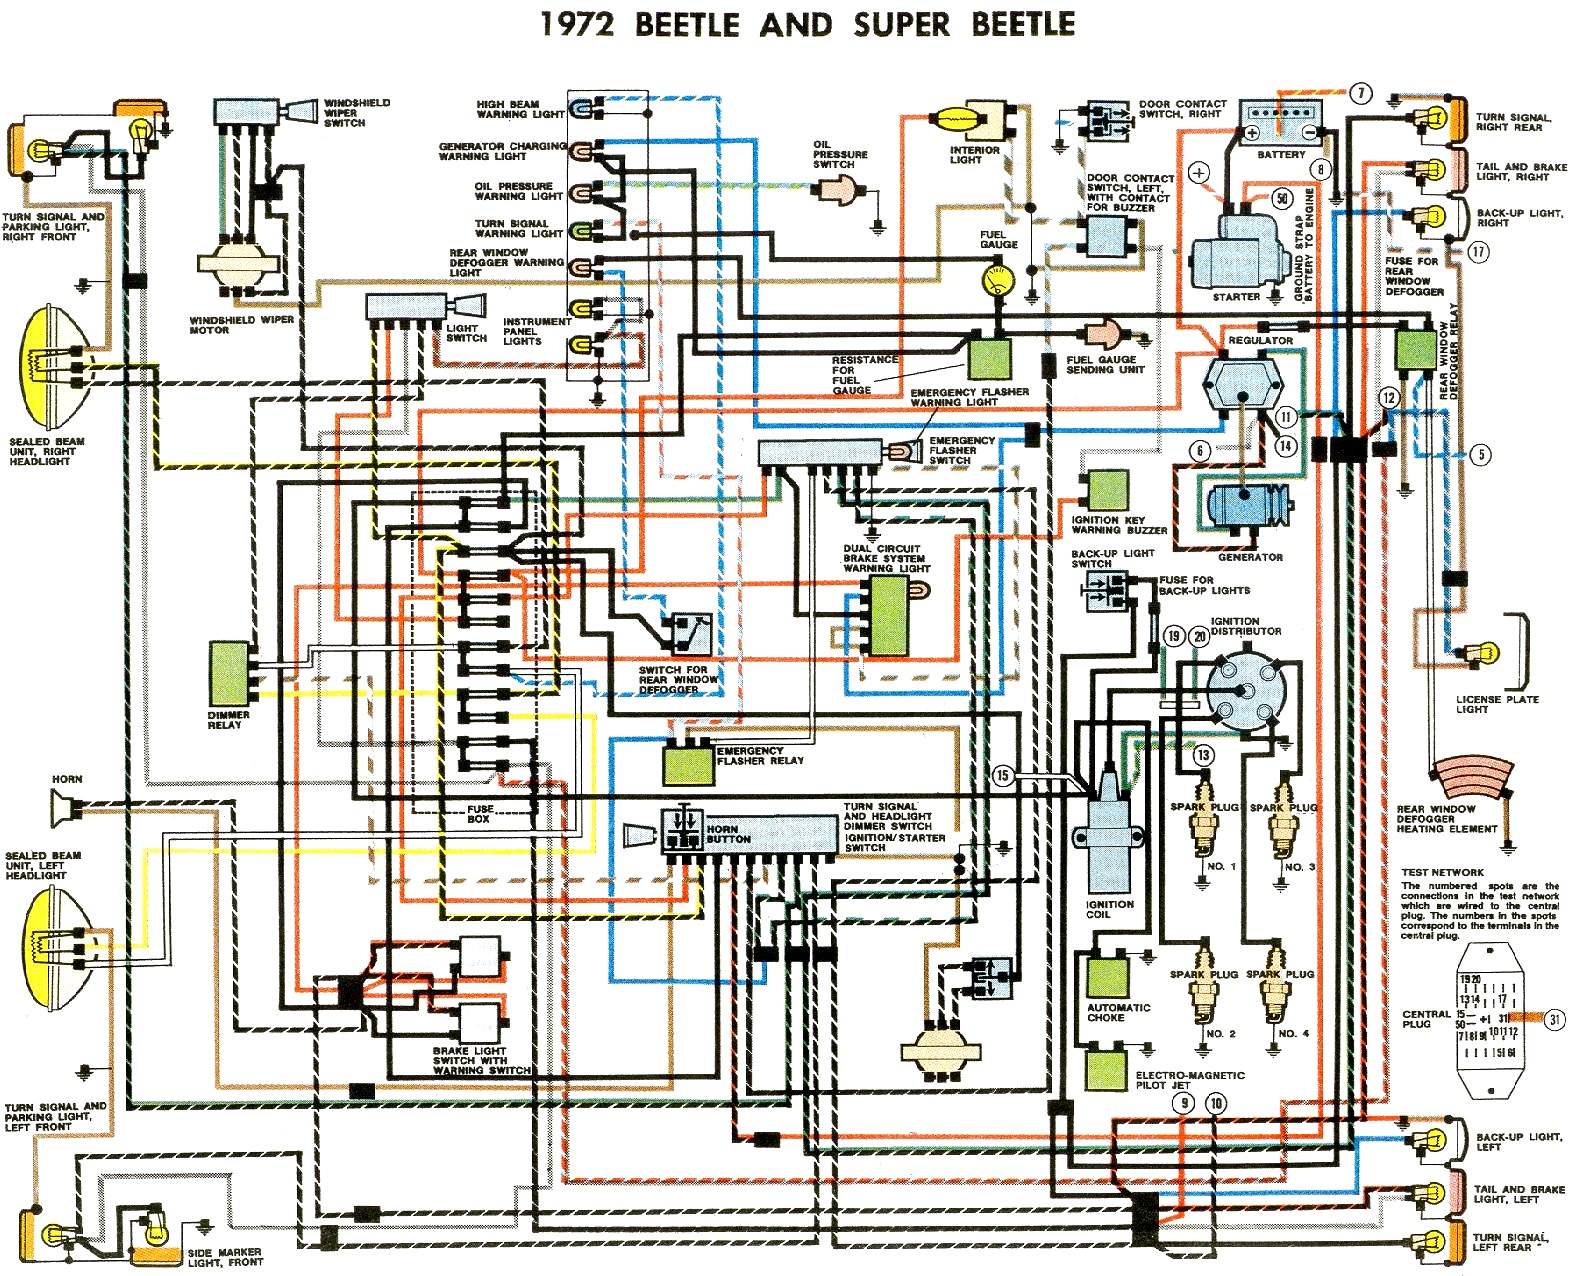 bug_72 2001 vw beetle wiring diagram 1964 vw beetle wiring diagram 2002 vw beetle wiring diagram at fashall.co